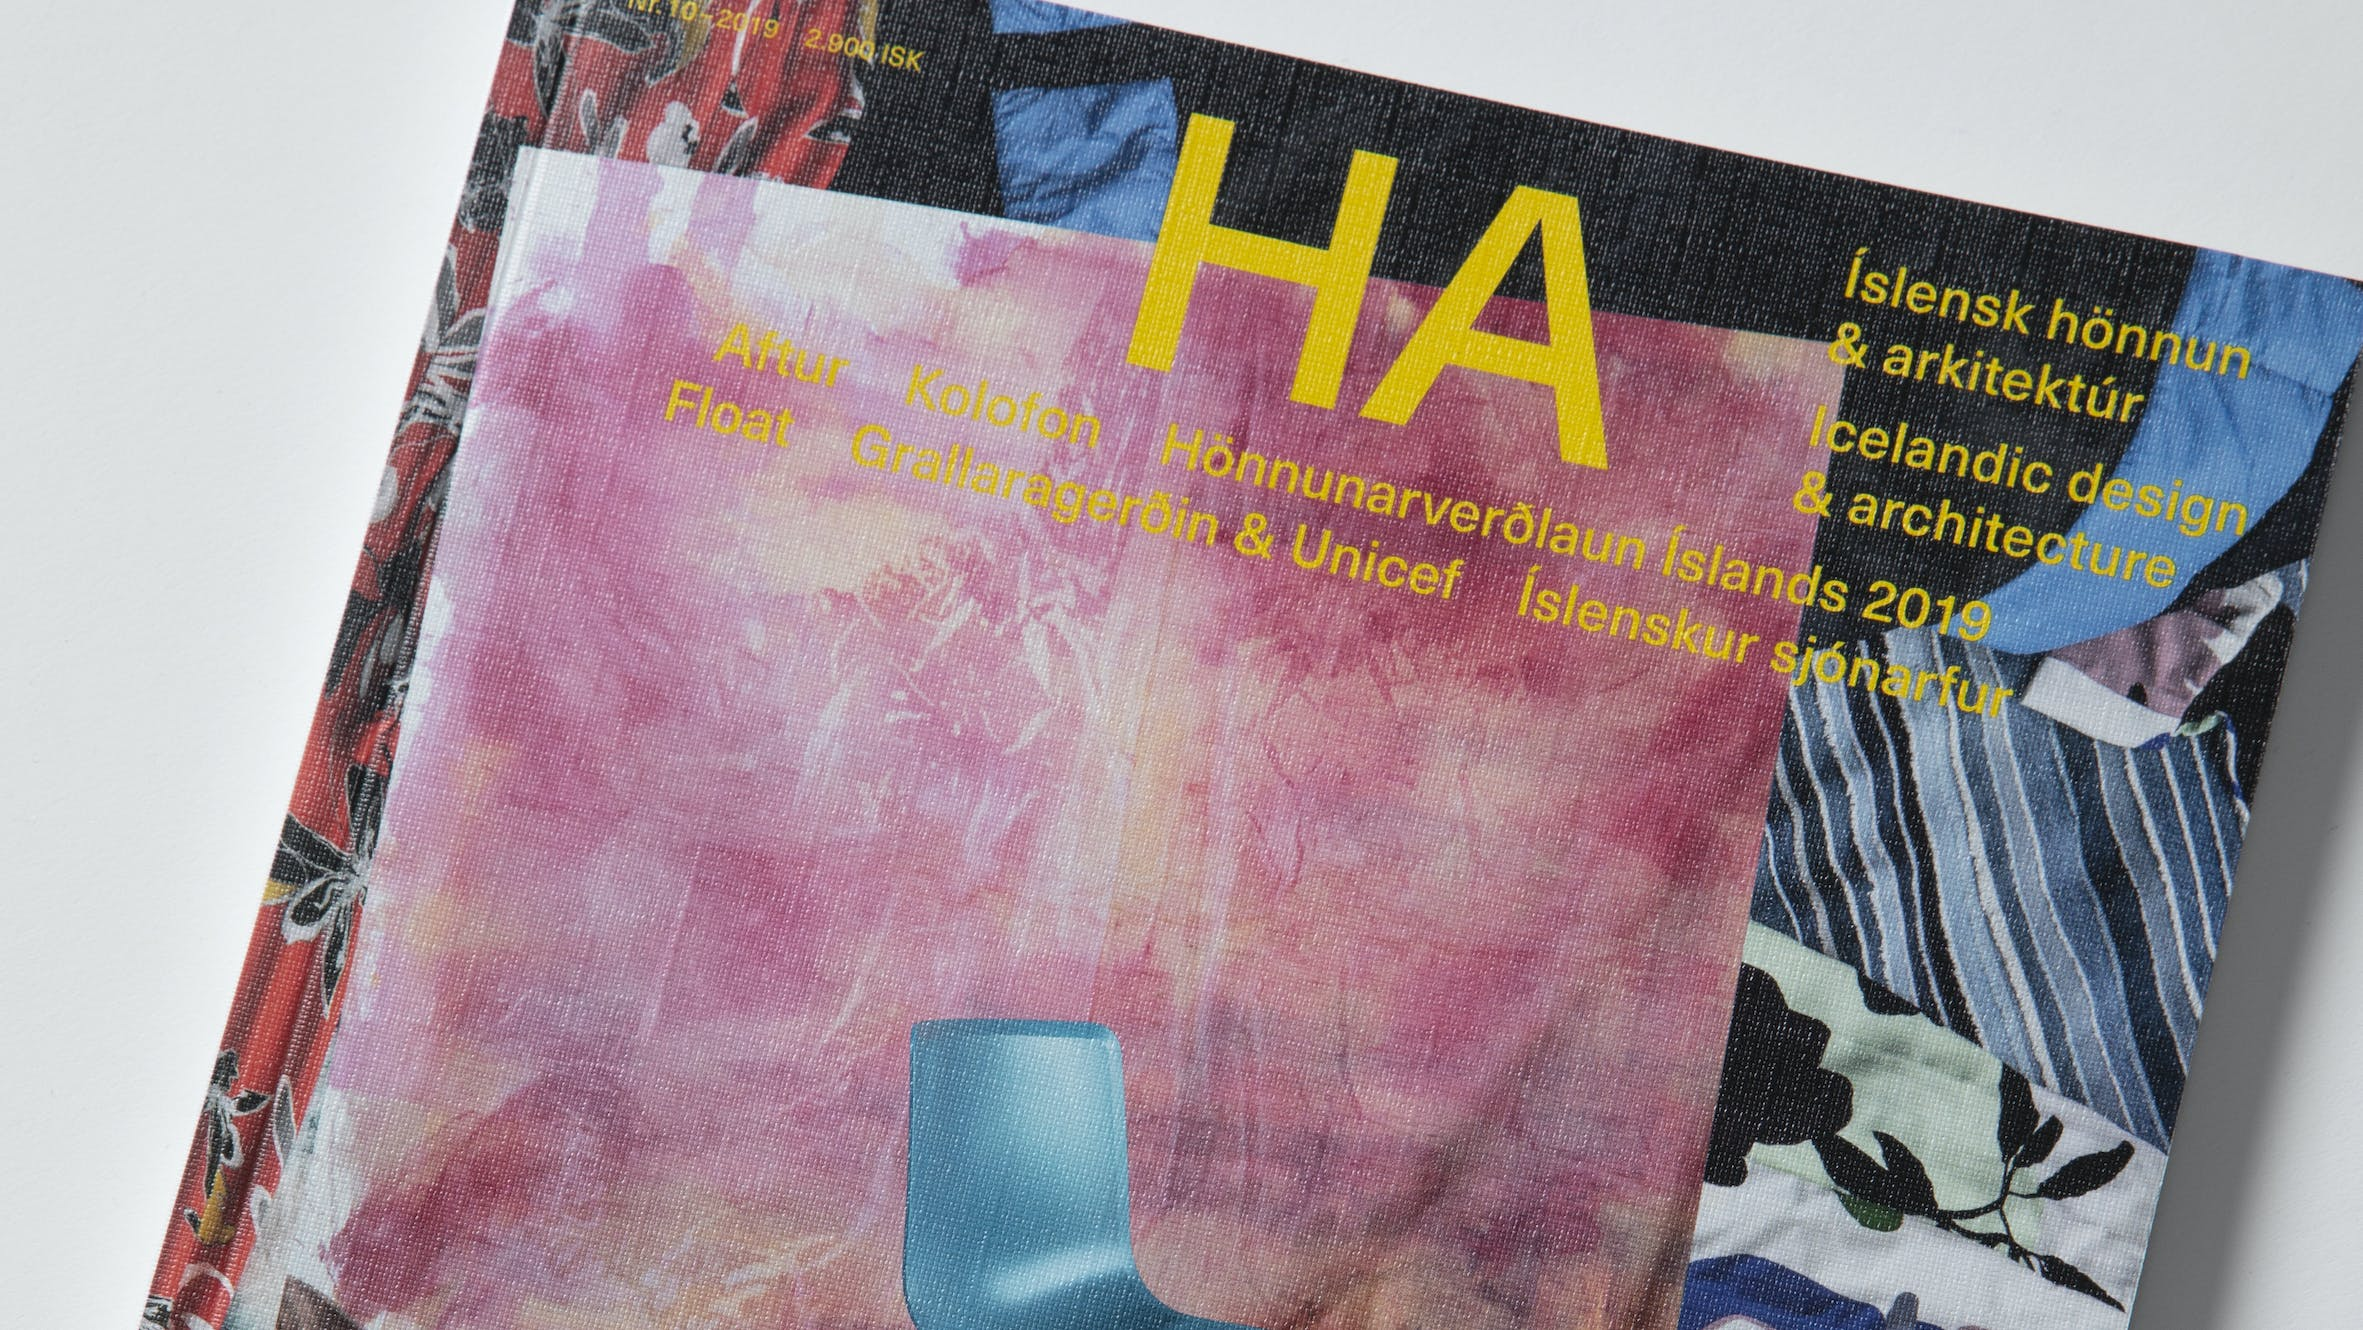 HA10 –Product picture of HA, Issue no. 10 published in November 2019.